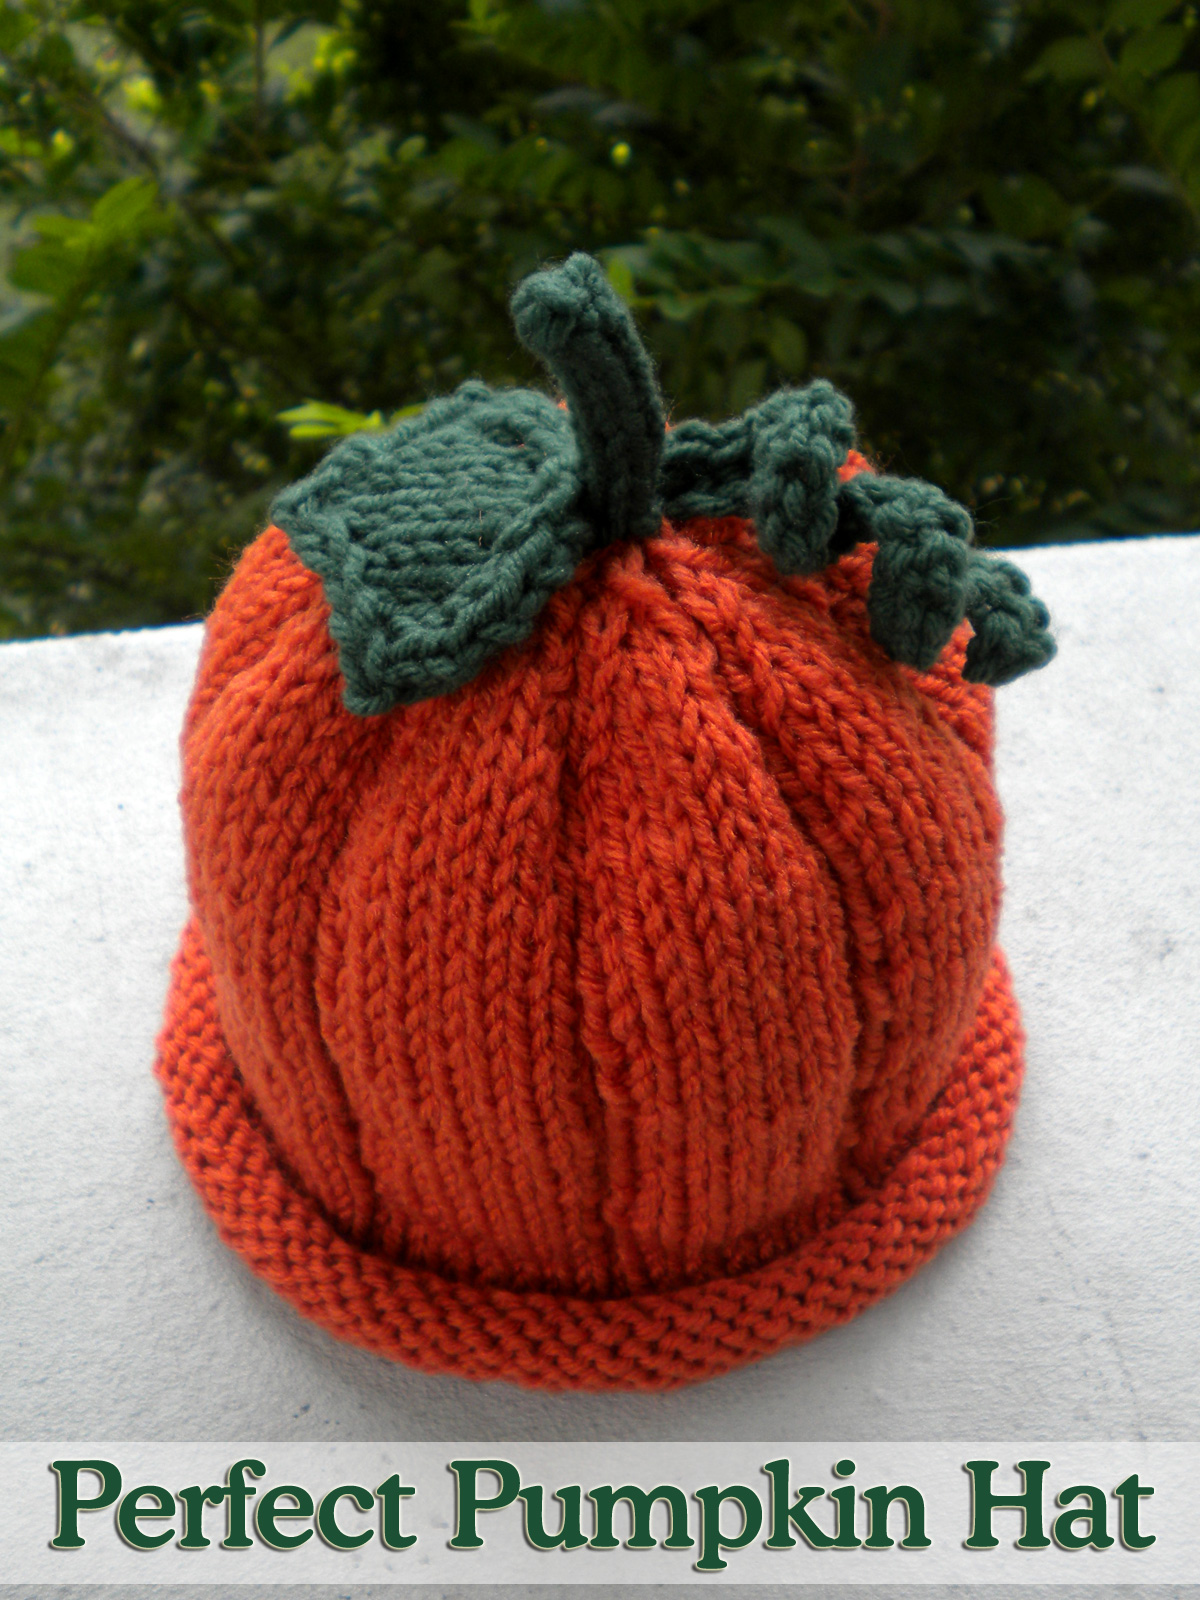 Knitting Pattern Hat Size 9 Needles : Perfect Pumpkin Hat (done On 2 Needles) Knitting Pattern ...